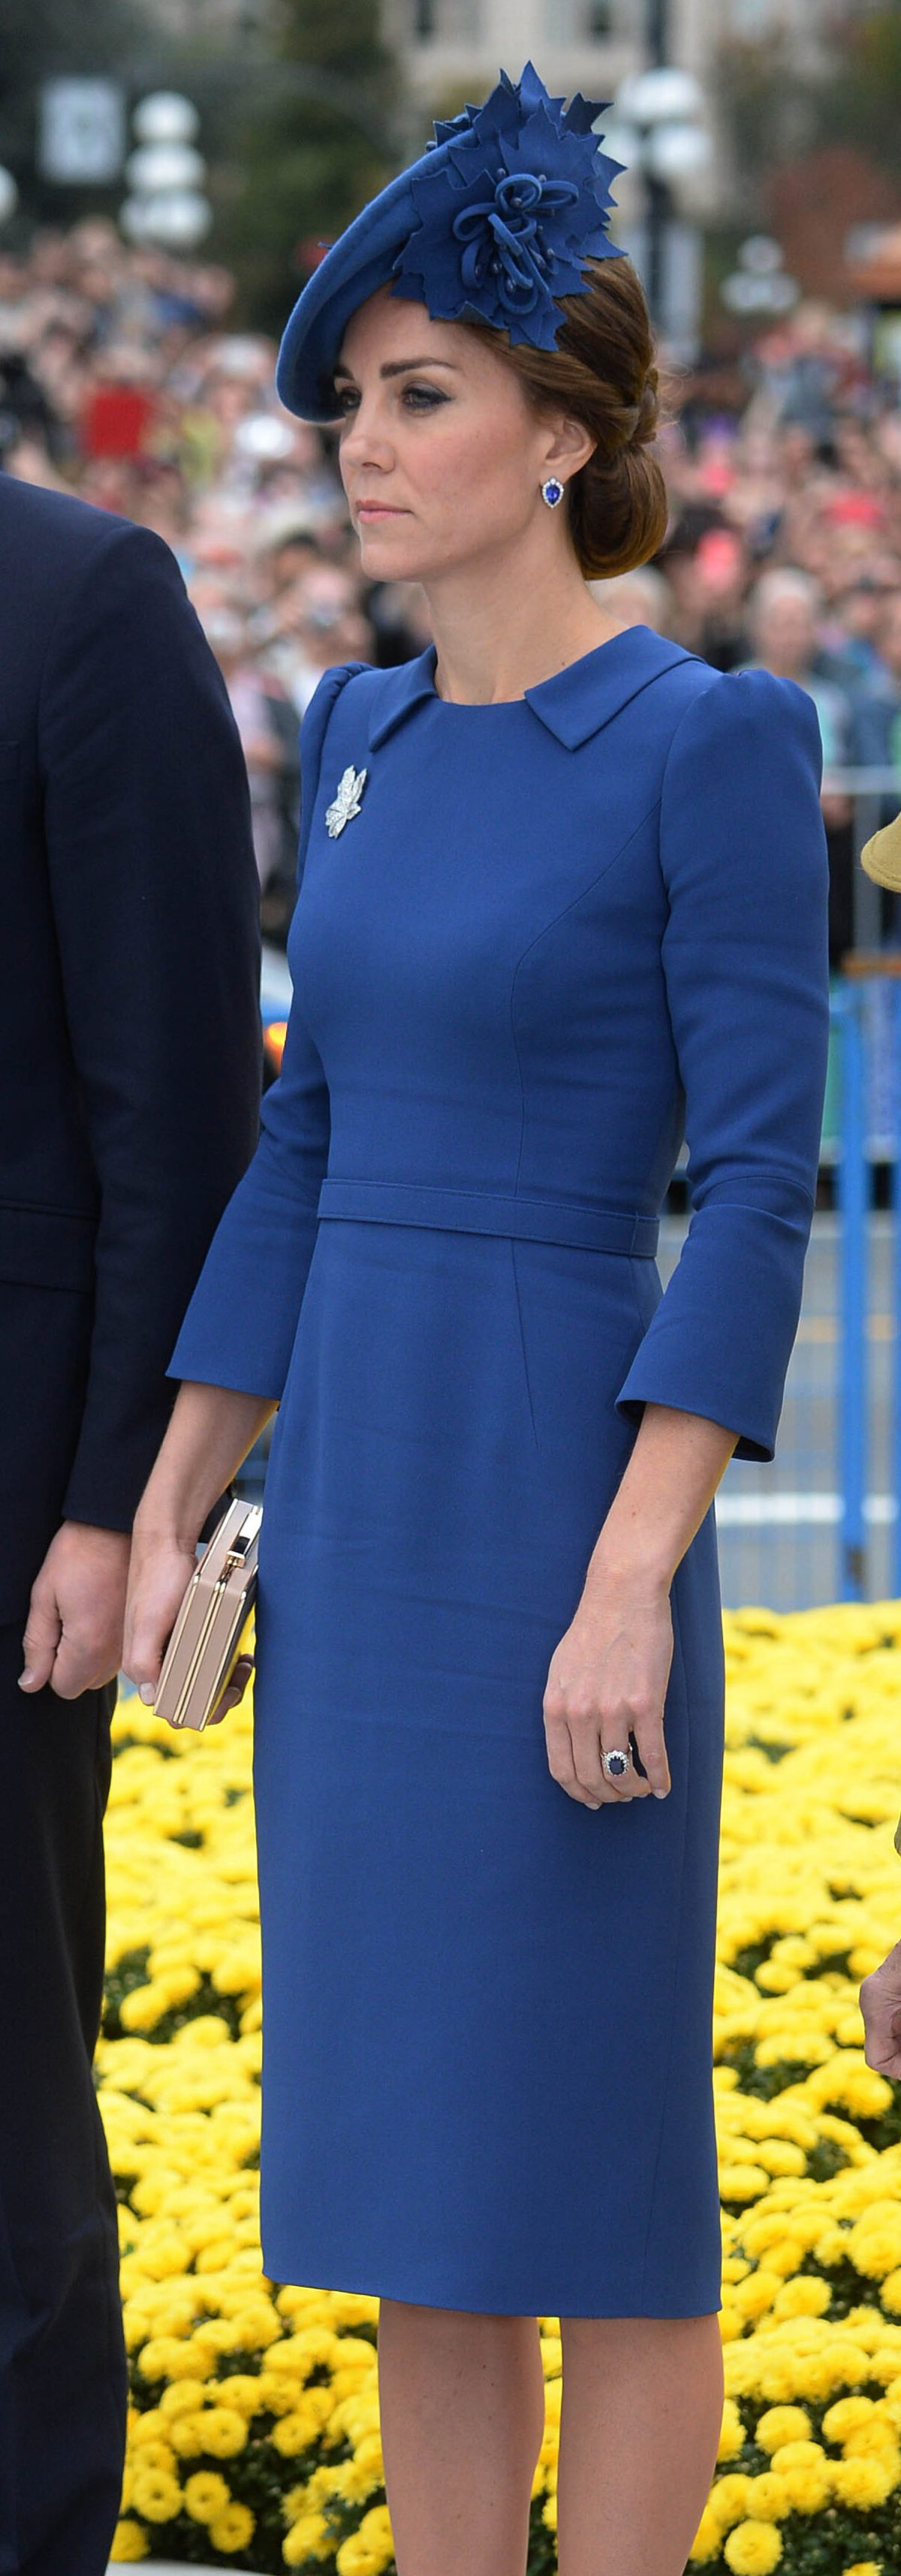 UK OUT for 28 Days..Image ©Licensed to i-Images Picture Agency. 24/09/2016. Victoria, Canada. Royal Tour Of Canada- Day one. Prince William, The Duke of Cambridge joined by his wife Catherine, The Duchess of Cambridge, at the Ceremony of the official arrival to Canada and British Columbia at the Cenotaph, Legislative Assembly of British Columbia, for the start of their 8 day tour of Canada.  Picture by  i-Images/ Rota